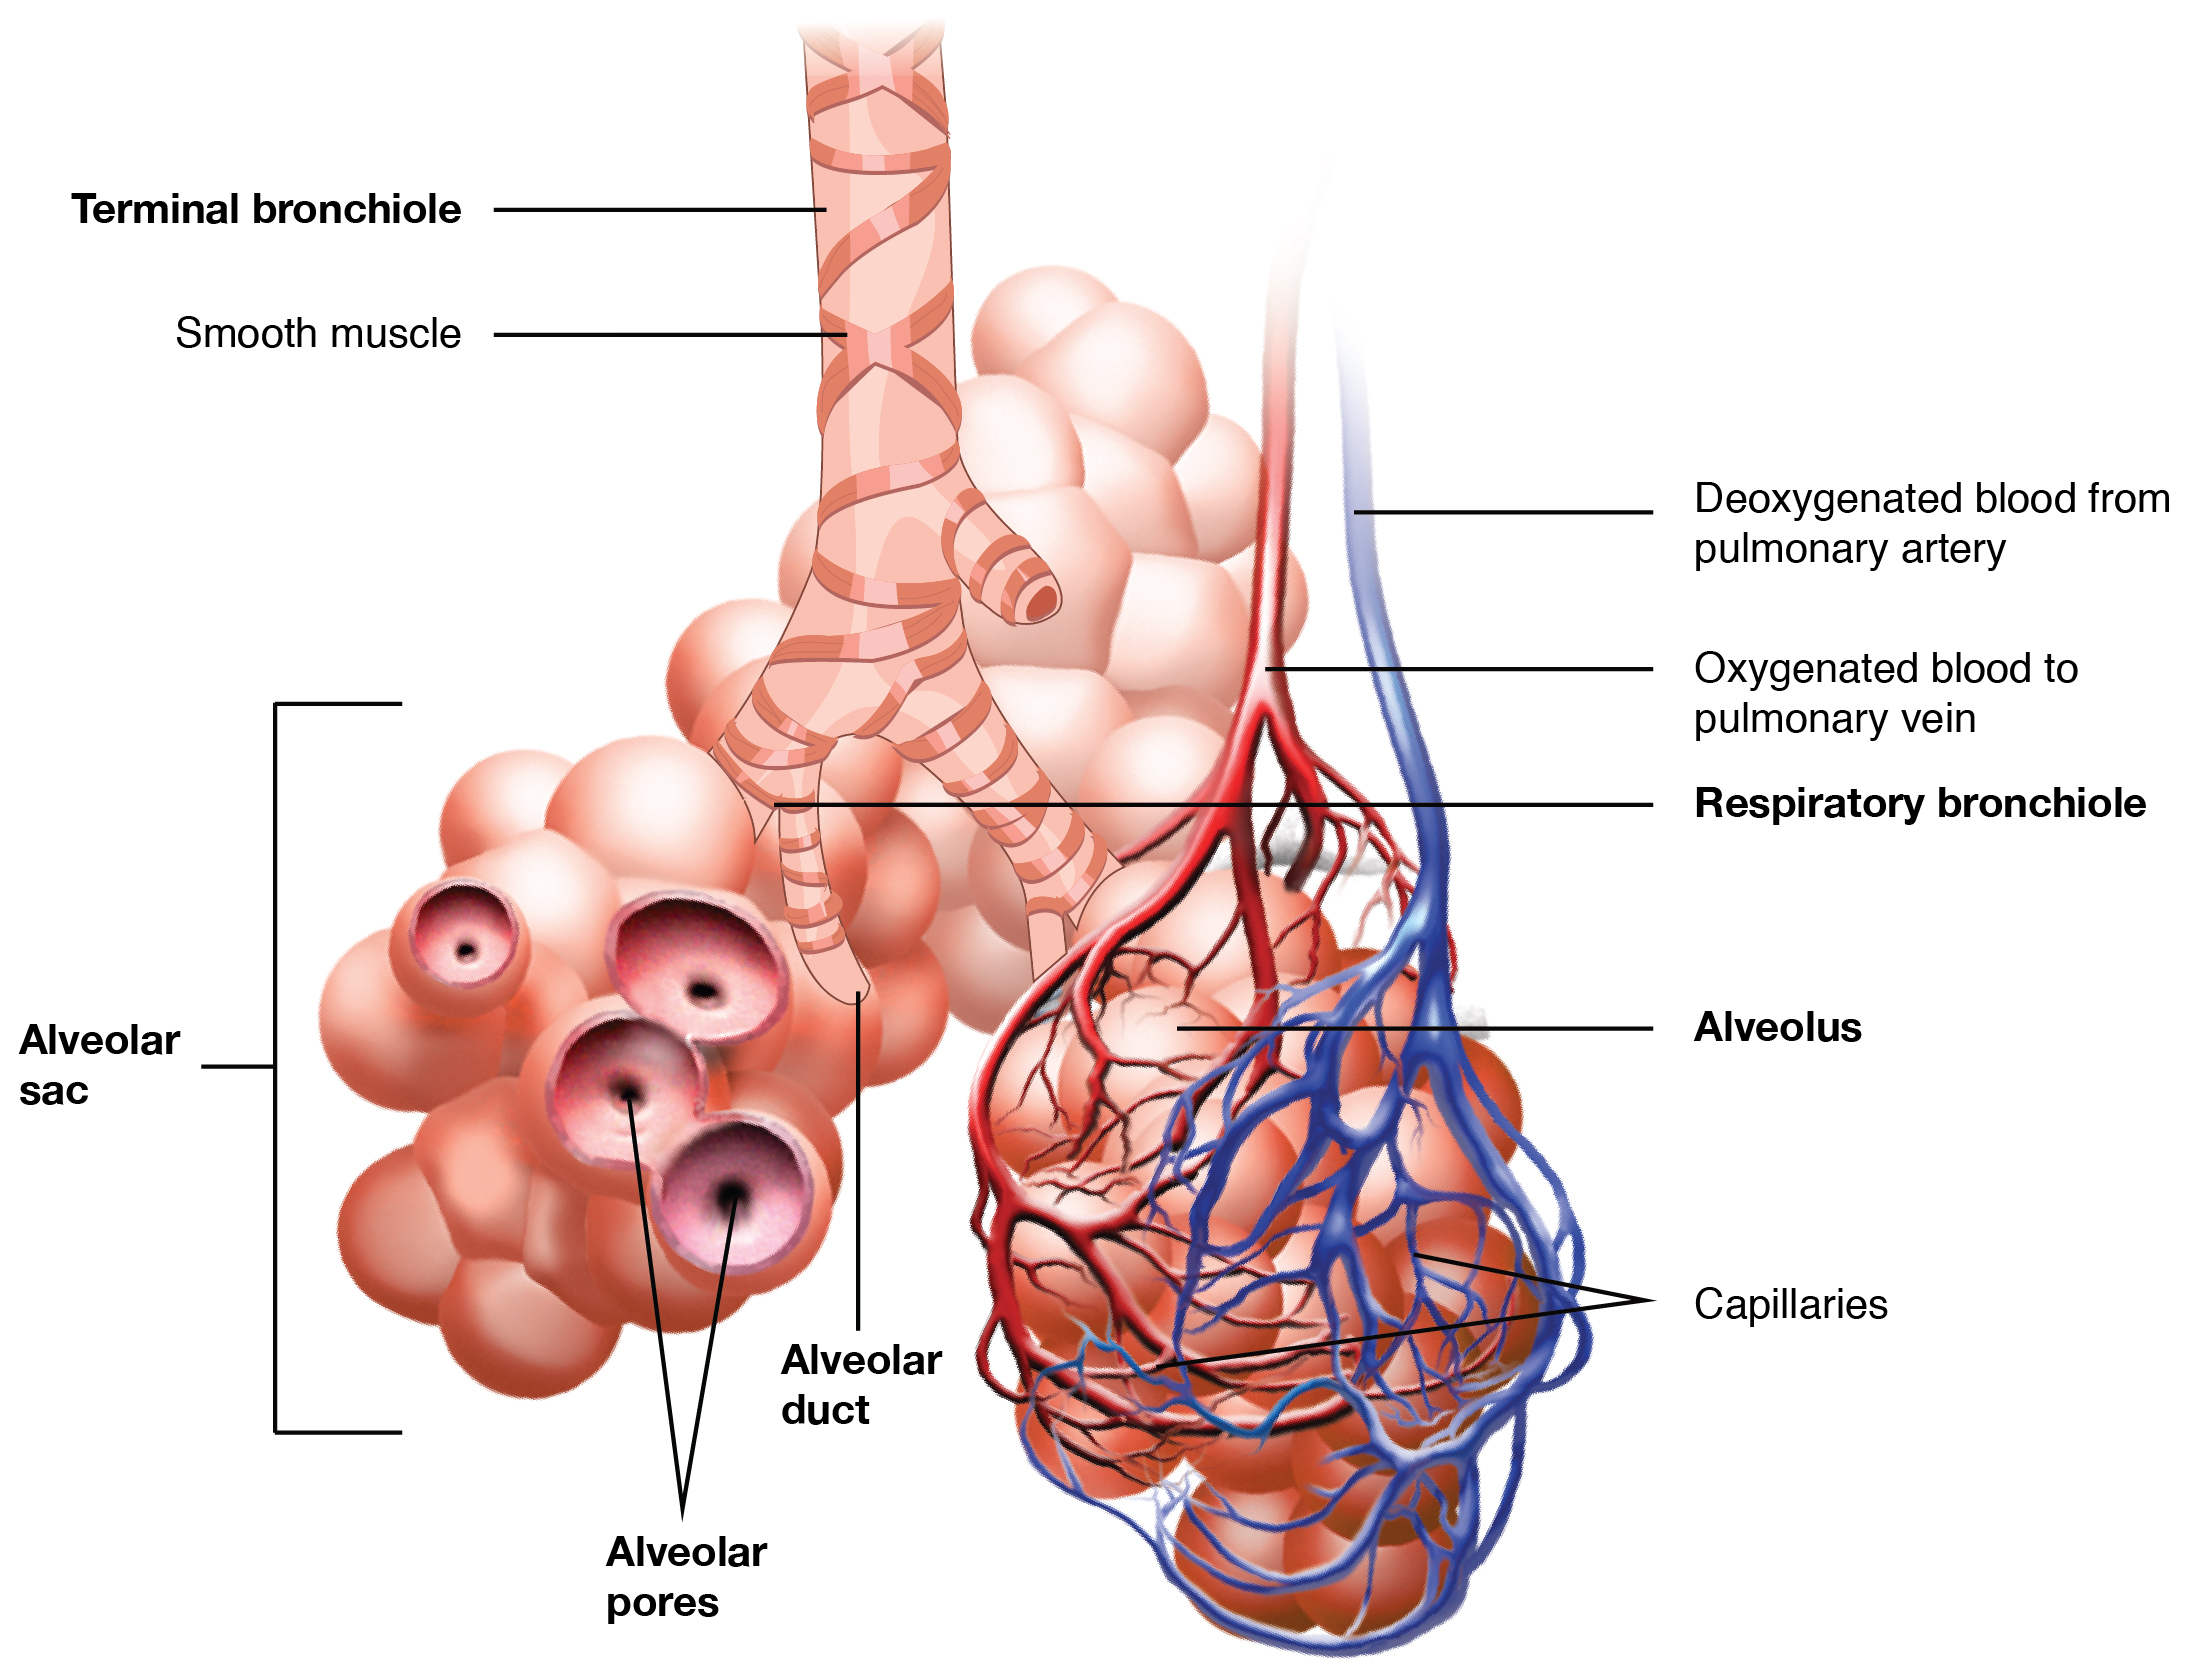 the lung anatomy diagram label wrangler radio wiring 22 1 organs and structures of respiratory system this image shows bronchioles alveolar sacs in lungs depicts exchange